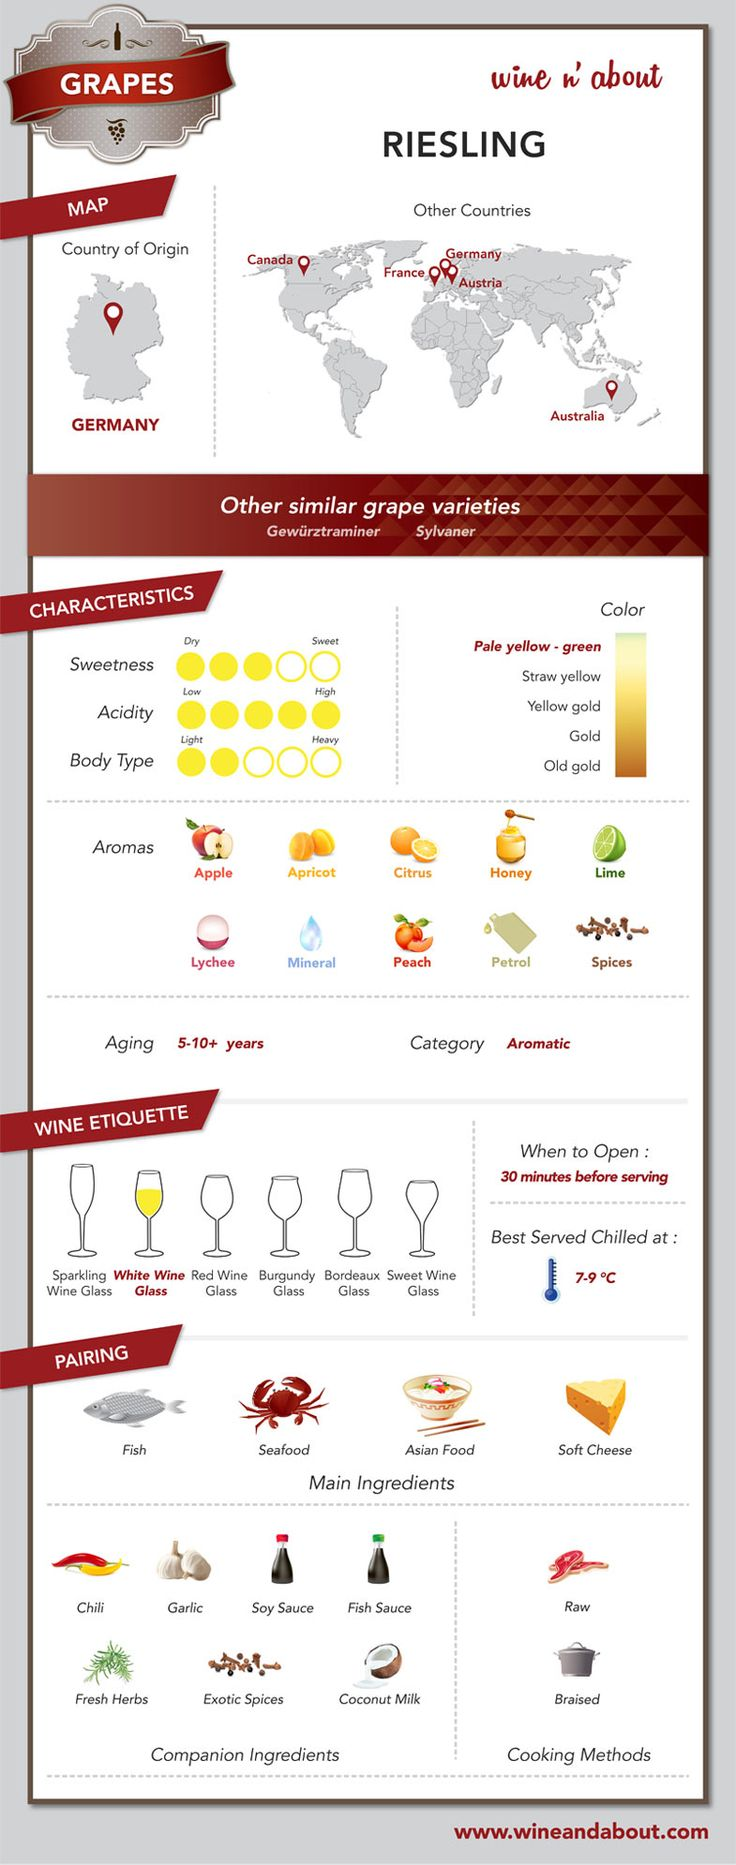 Riesling is my 2nd favorite white wine. I especially love Washington rieslings…